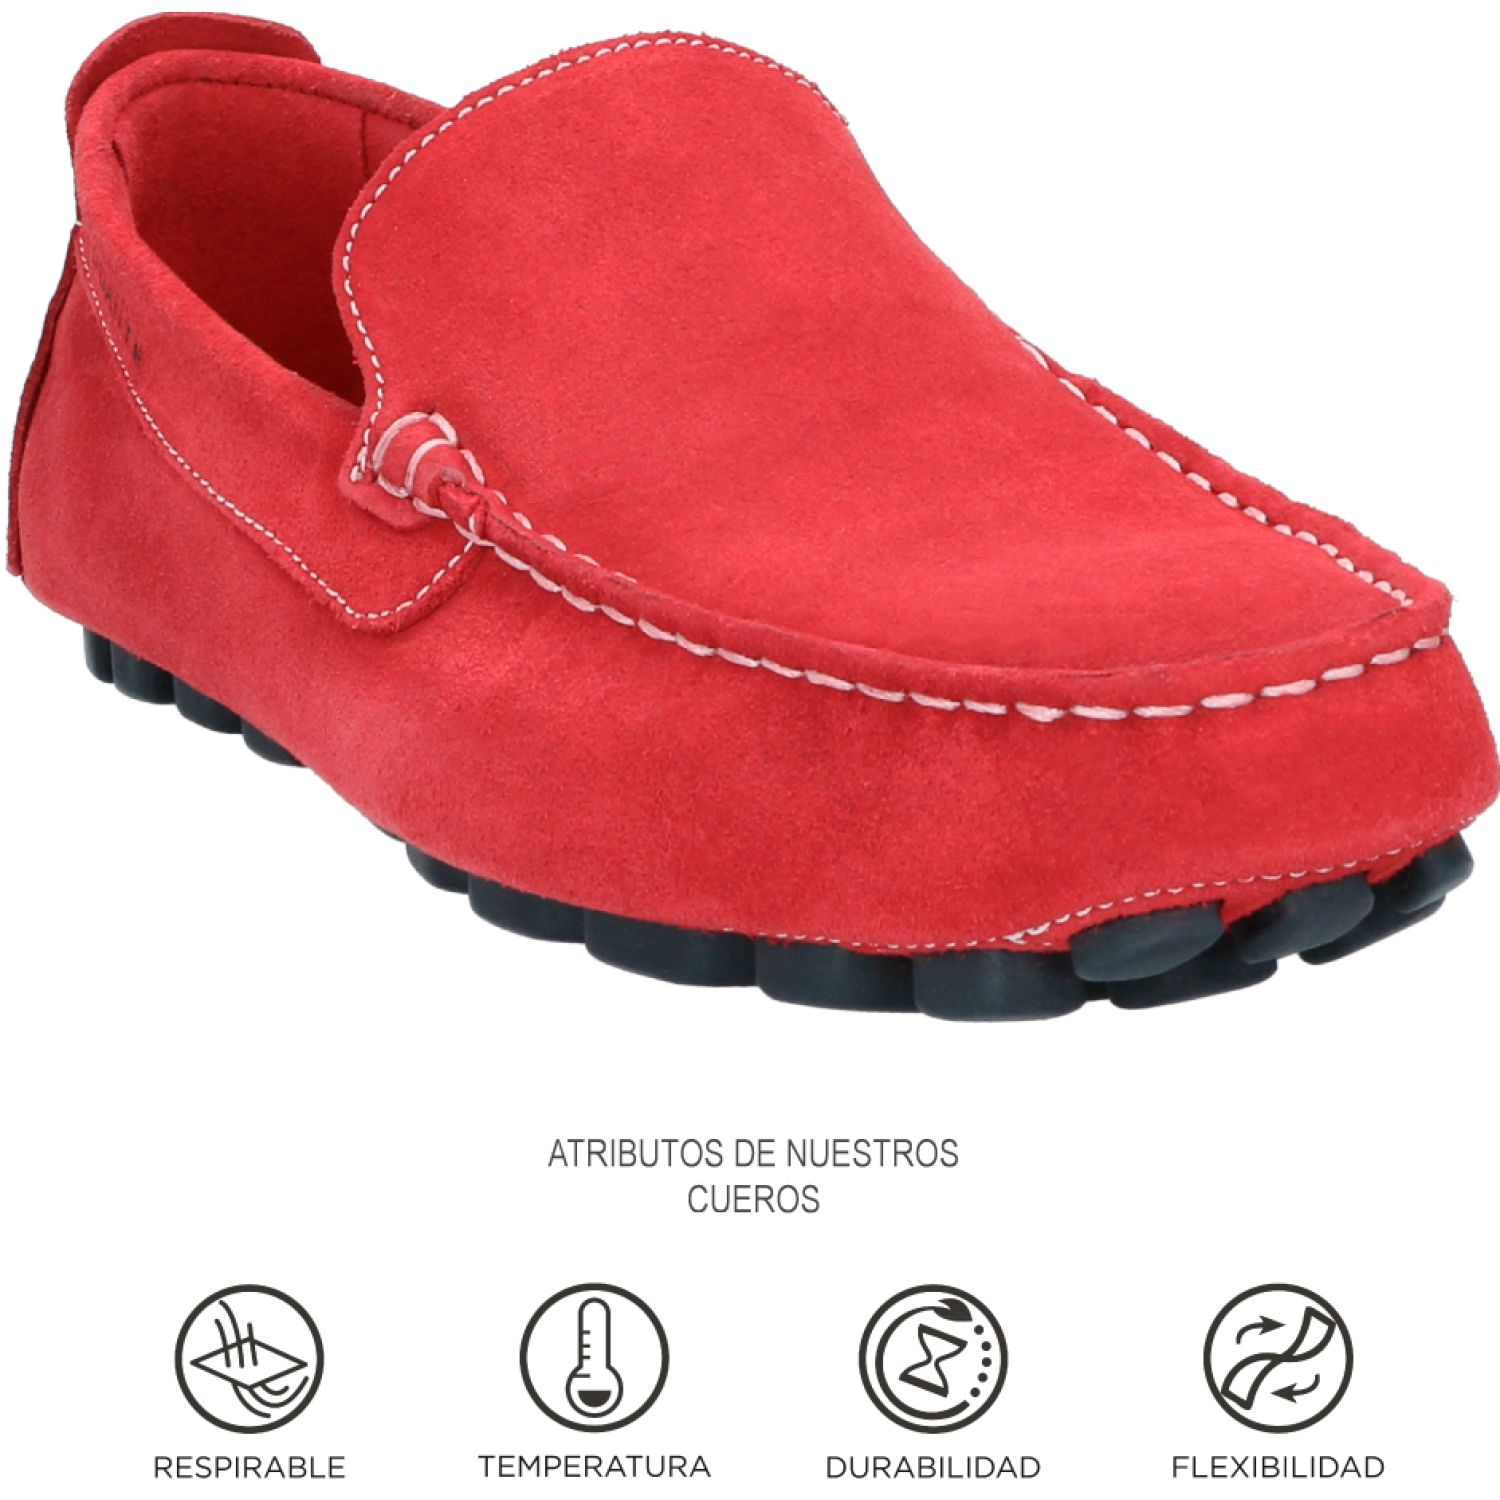 GUANTE SAINT TROPEZ Rojo Oxfords